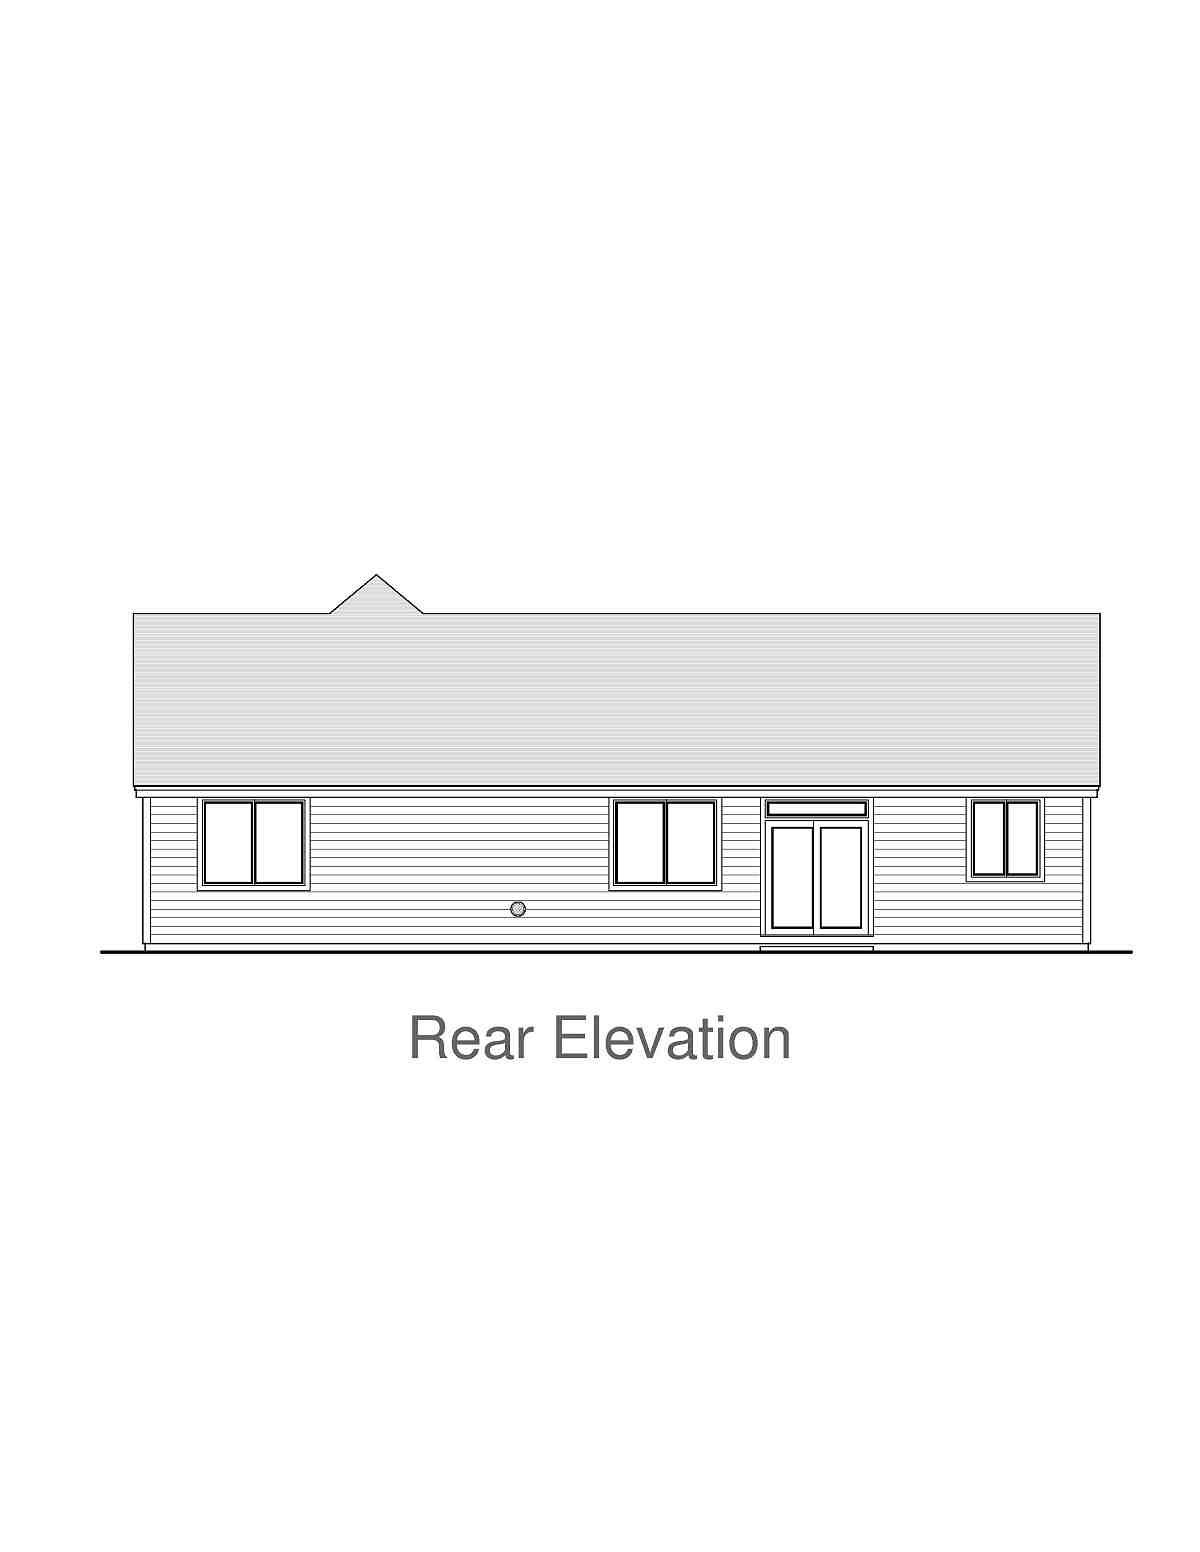 Craftsman, Ranch, Traditional House Plan 44408 with 3 Beds, 2 Baths, 2 Car Garage Rear Elevation